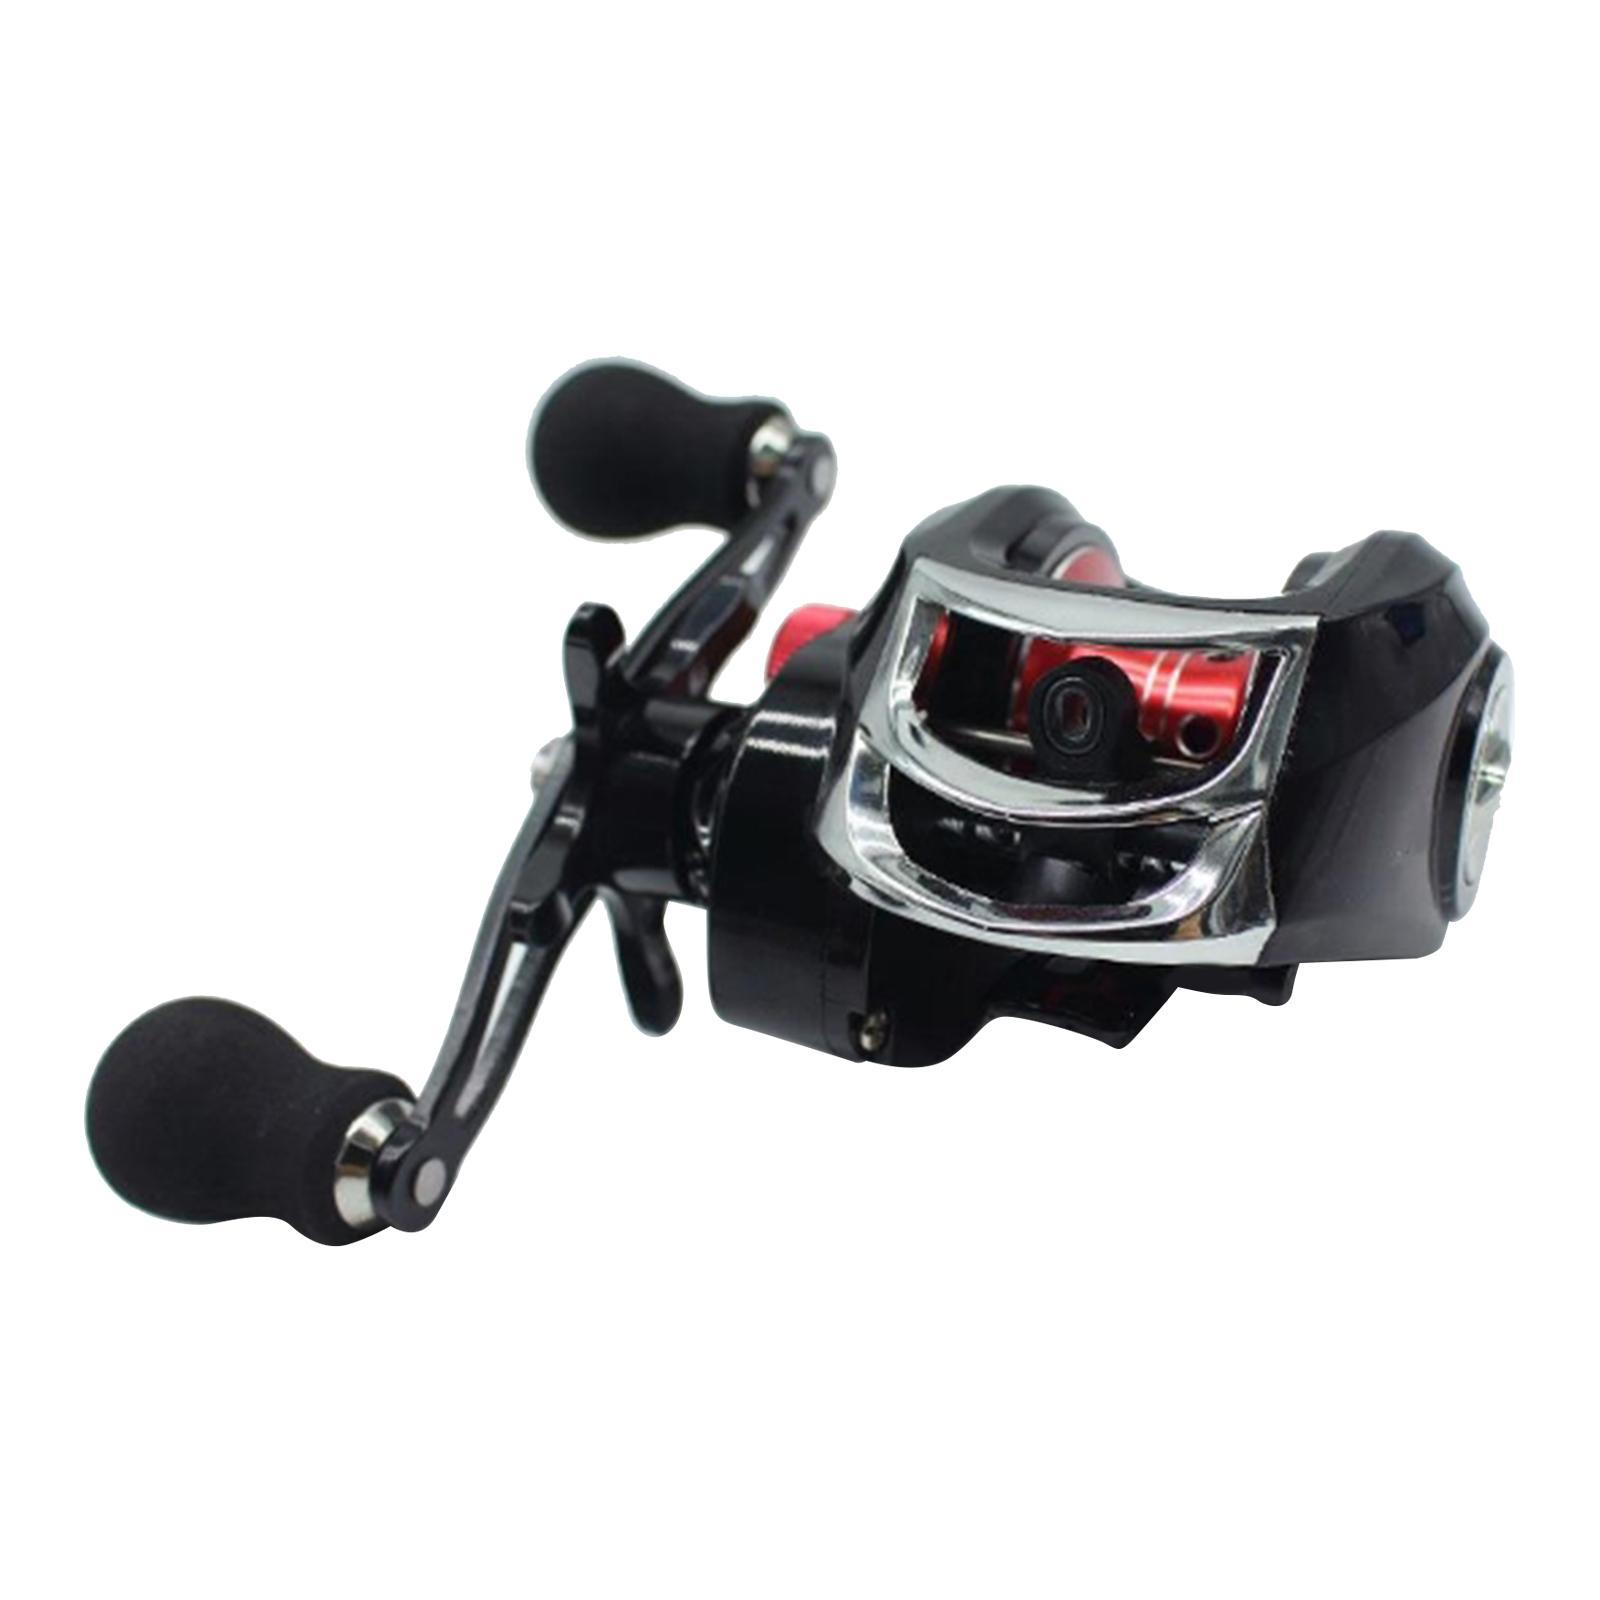 Full-Metal-Baitcaster-Low-Profile-Baitcasting-Fishing-Reel-Long-Casting-Reel thumbnail 10